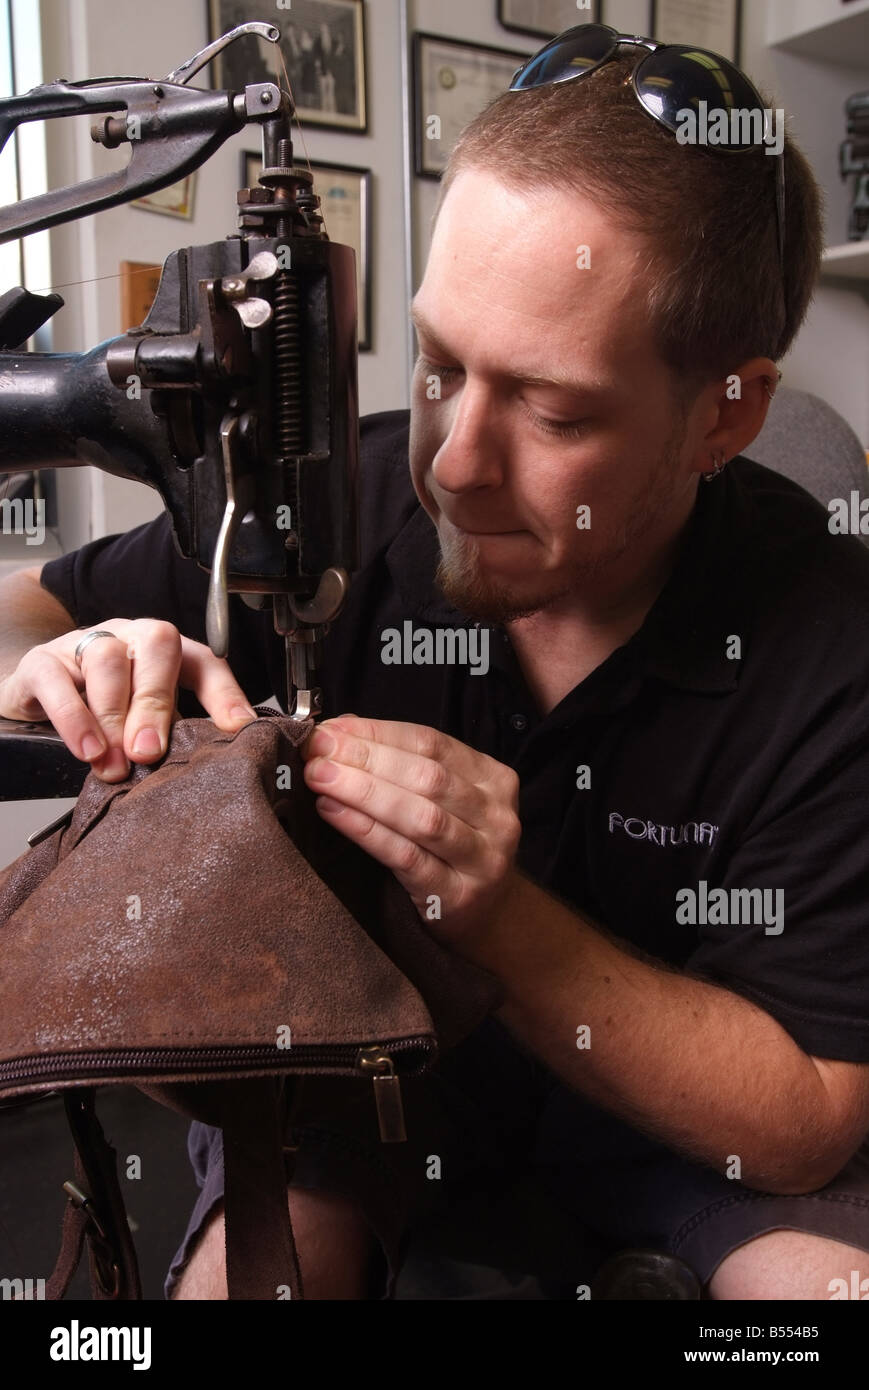 A man uses an antique Singer sewing machine to repair leather goods in a small shop in Maryland USA - Stock Image